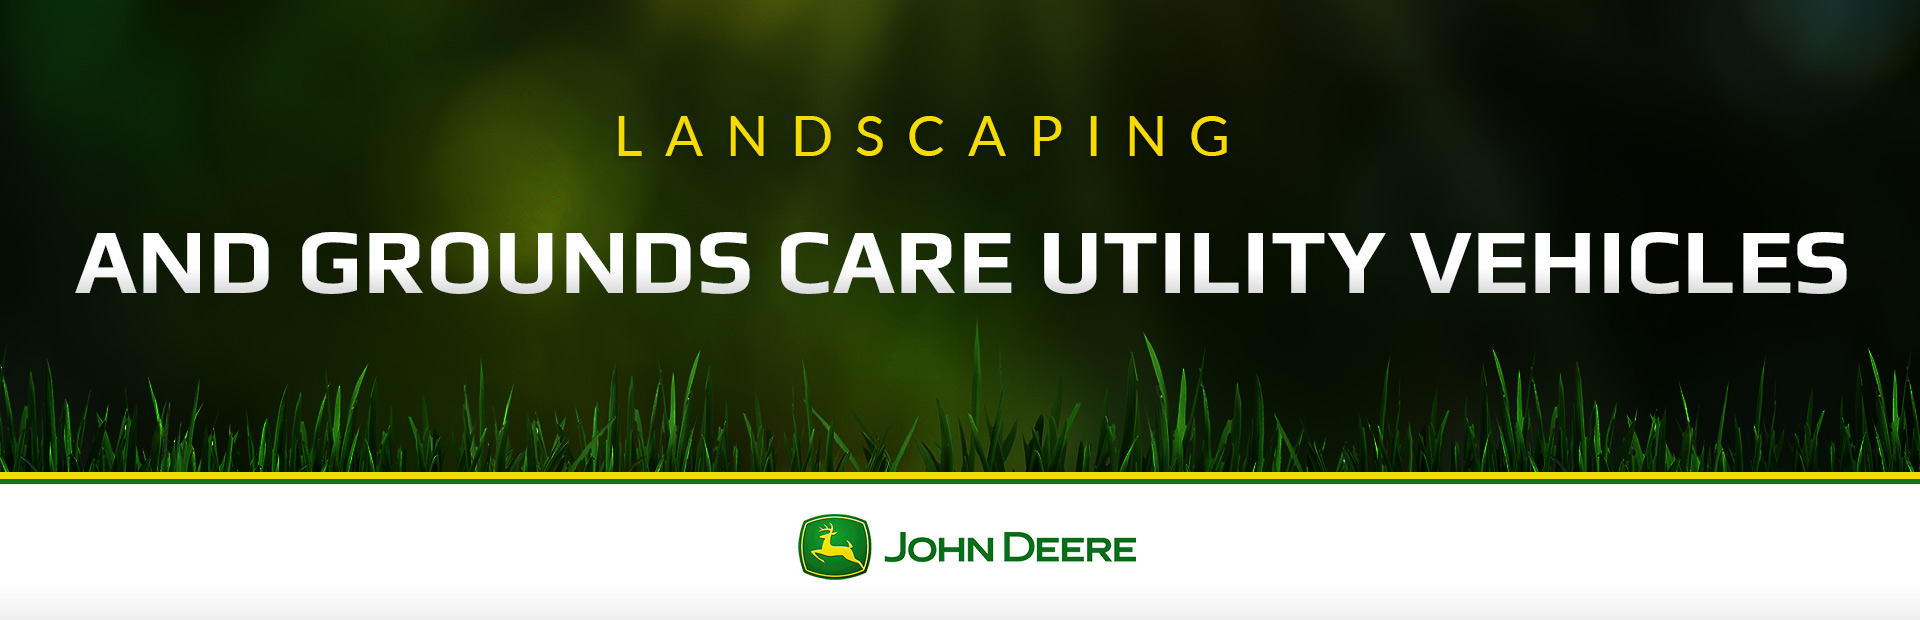 John Deere: Landscaping and Grounds Care Utility Vehicles